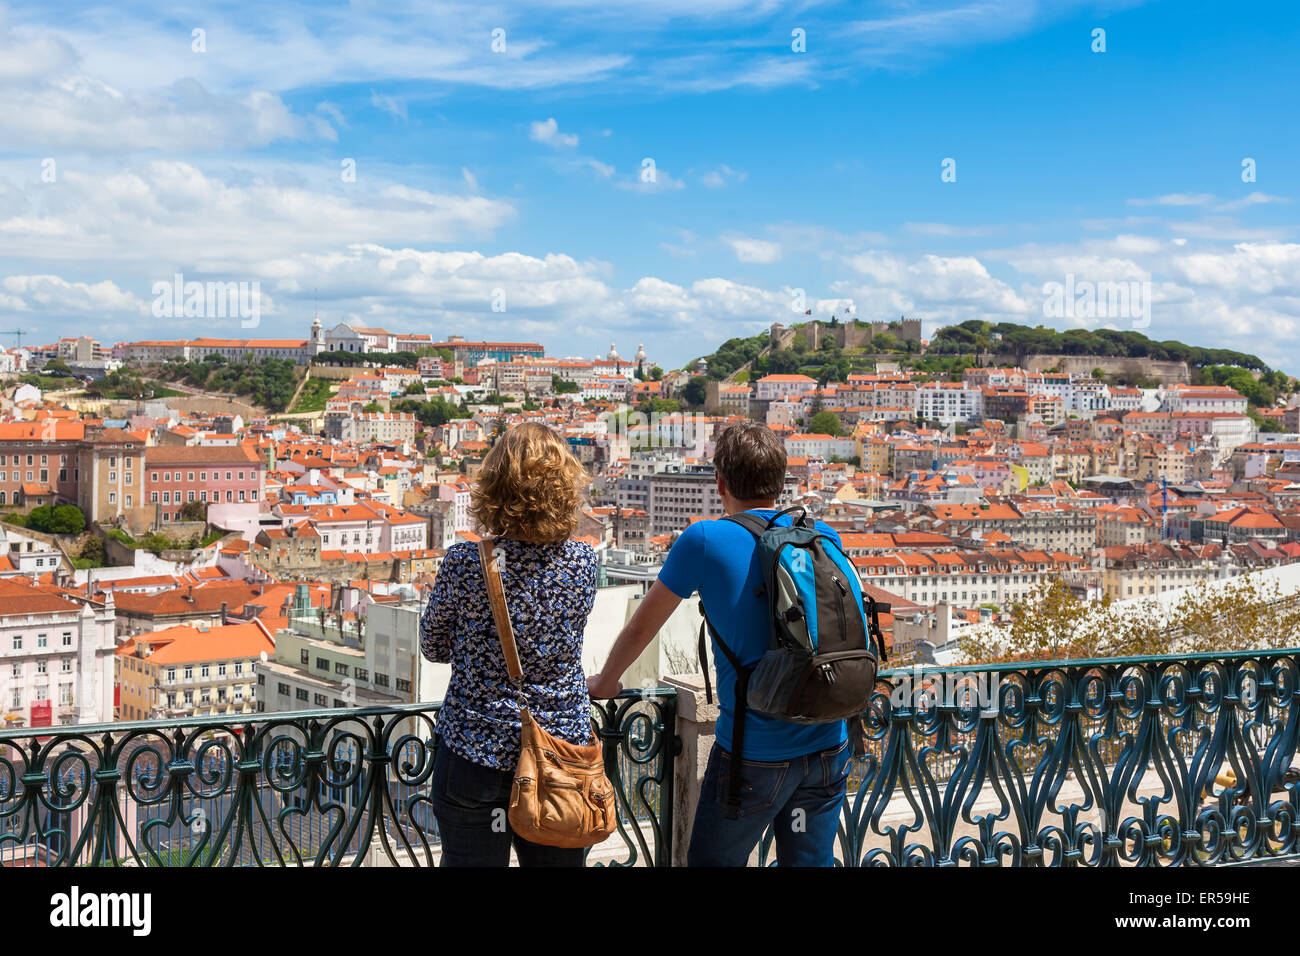 Tourist watching to Lisbon rooftop from Sao Pedro de Alcantara viewpoint - Miradouro in Portugal - Stock Image